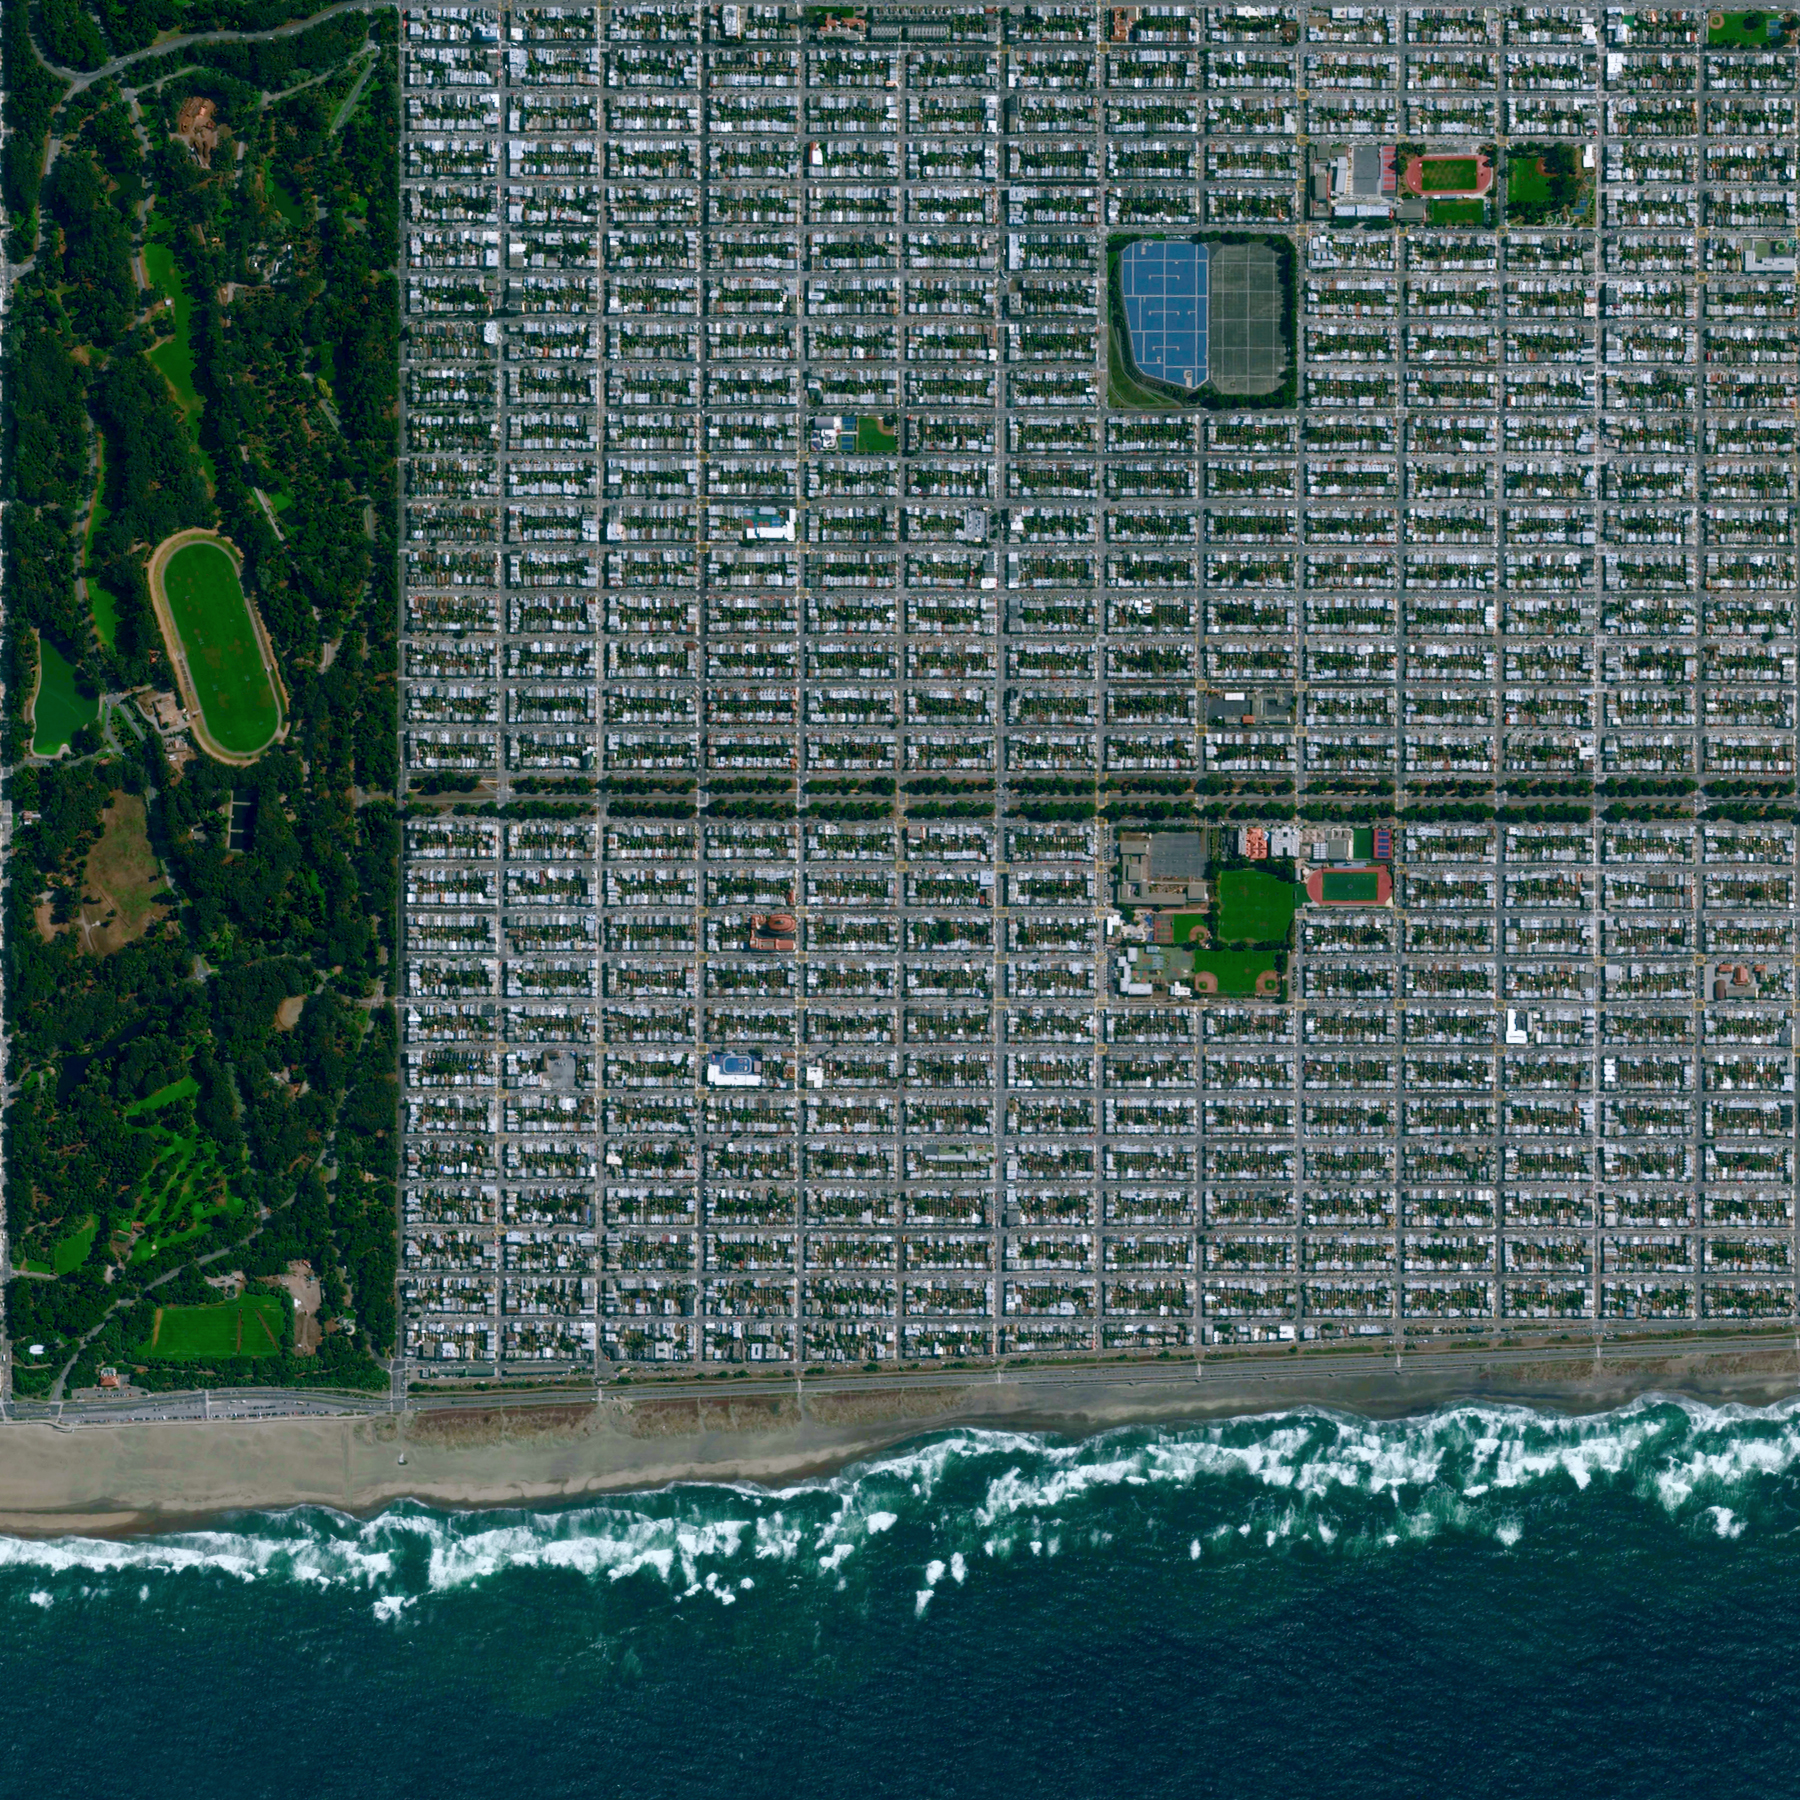 """9/22/2015   Sunset District   San Francisco, California, USA  37.756279578°, -122.487415727°    The Sunset District is the largest and most populous neighborhood within San Francisco, California. Bordered by Golden Gate Park on its northern side, the district is home to more than 85,000 people. Sunset is often referred to as """"The Avenues"""" because it is spanned by numbered north-south thoroughfares."""